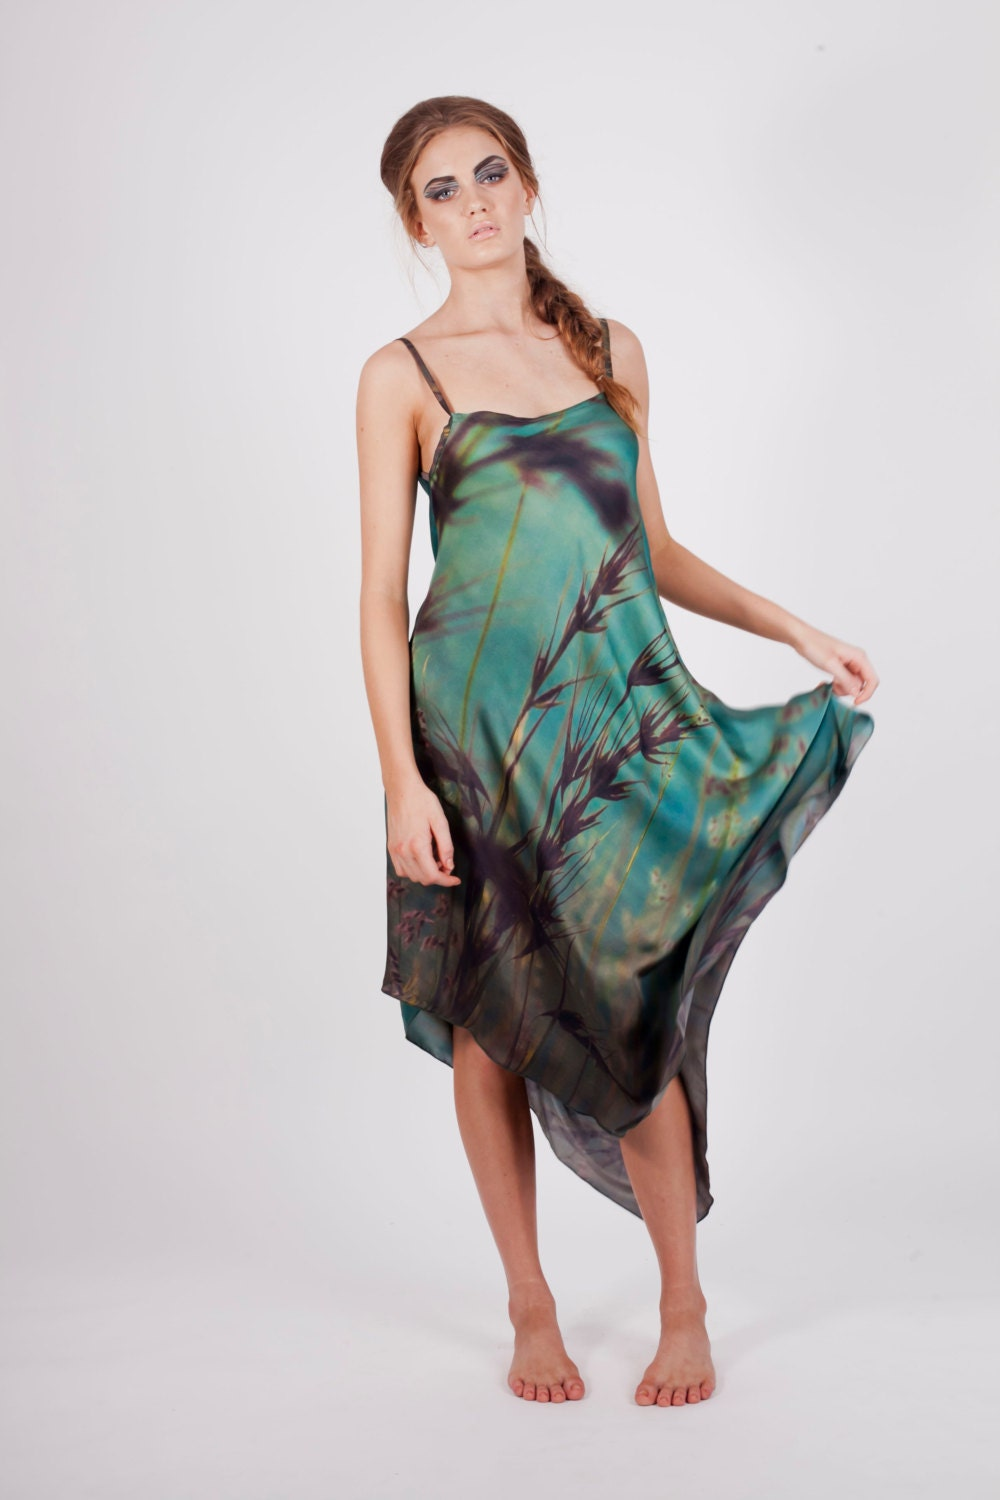 Long Silk Georgette Dress Printed with Ocean and Grasses at Sunset - HarrietJane